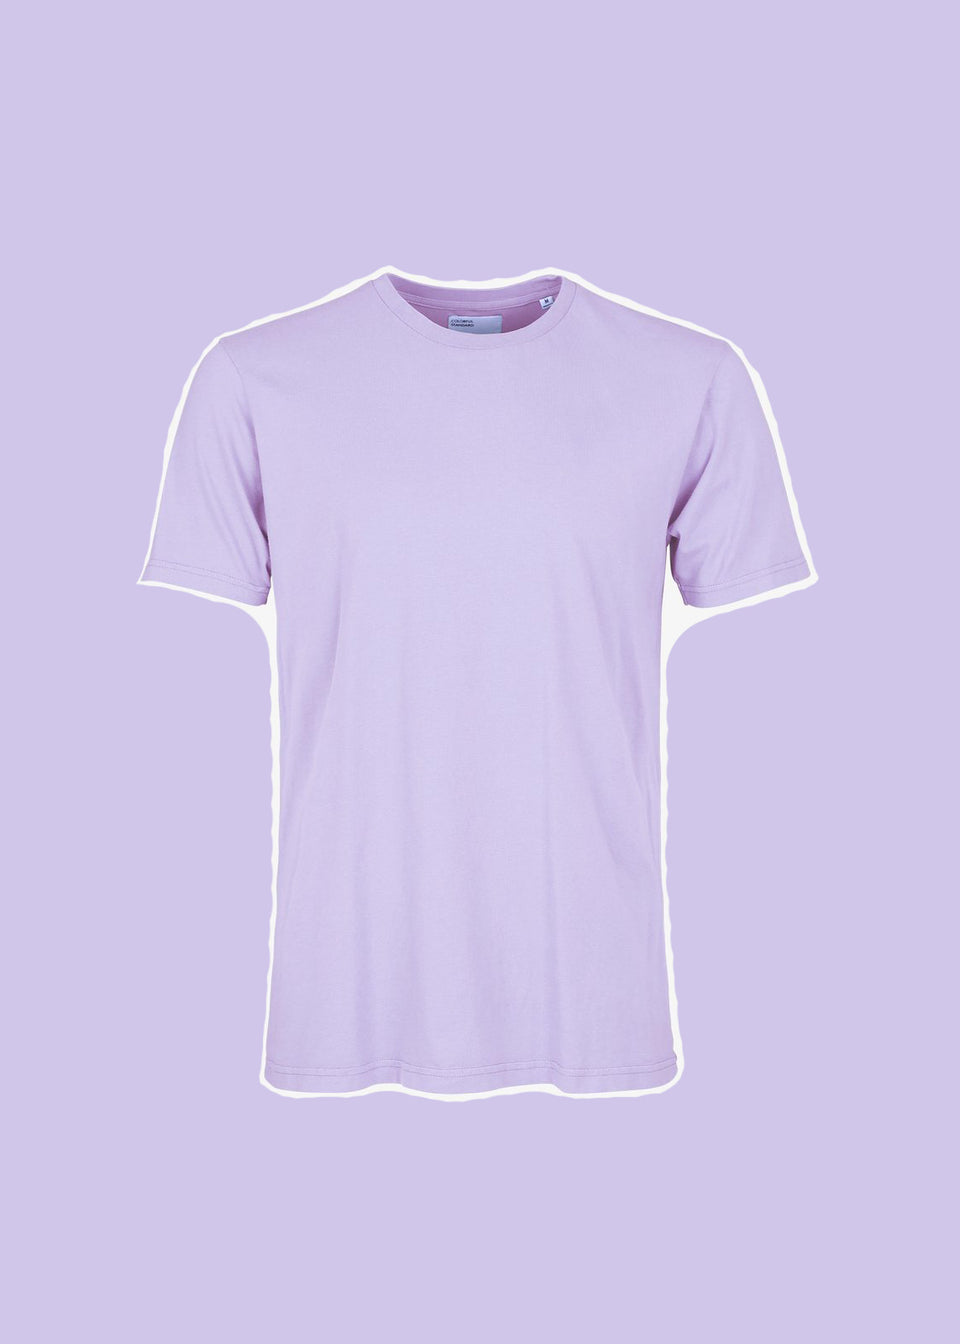 COLORFUL STANDARD • T-shirt Coton bio Lavande